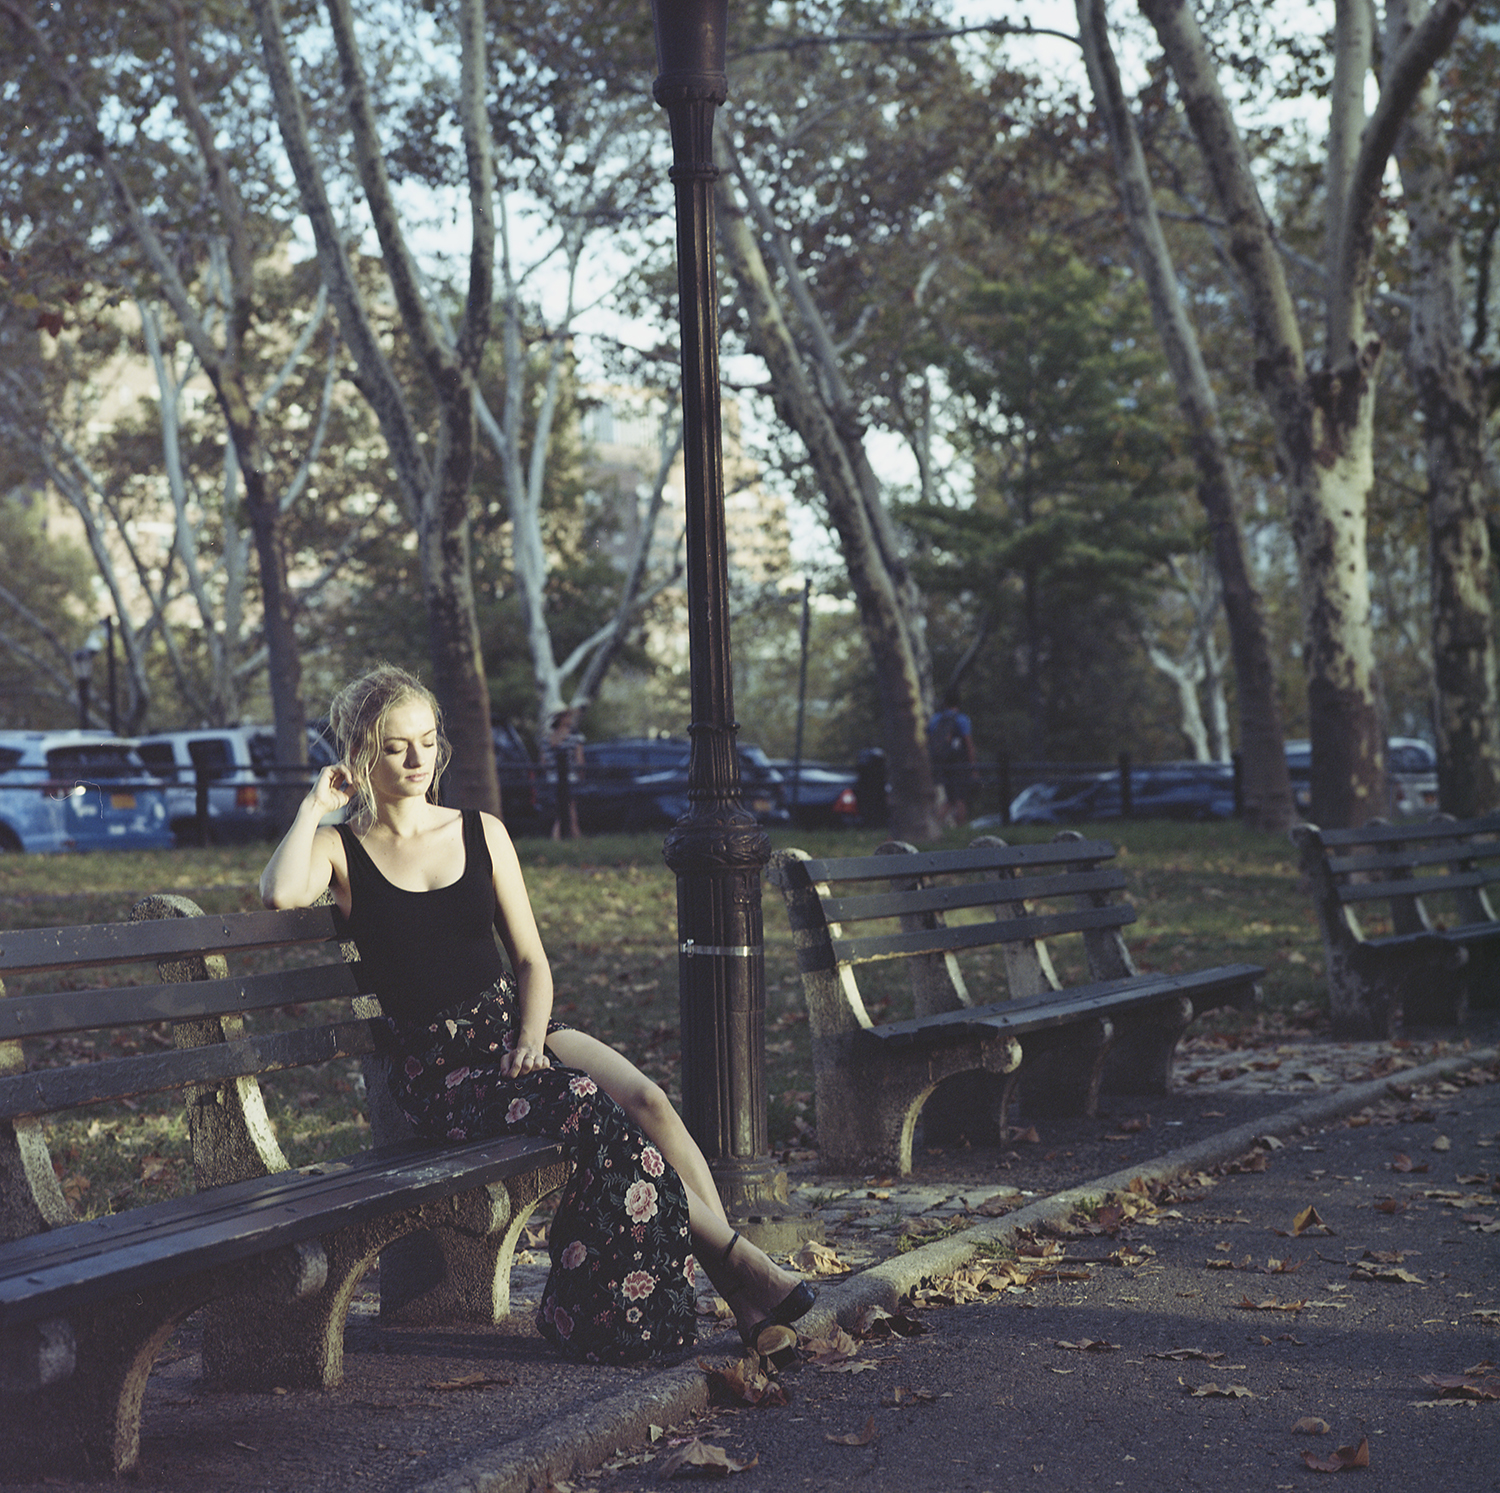 Juliane, Brooklyn, New York City, September 2017, Kodak Portra 160